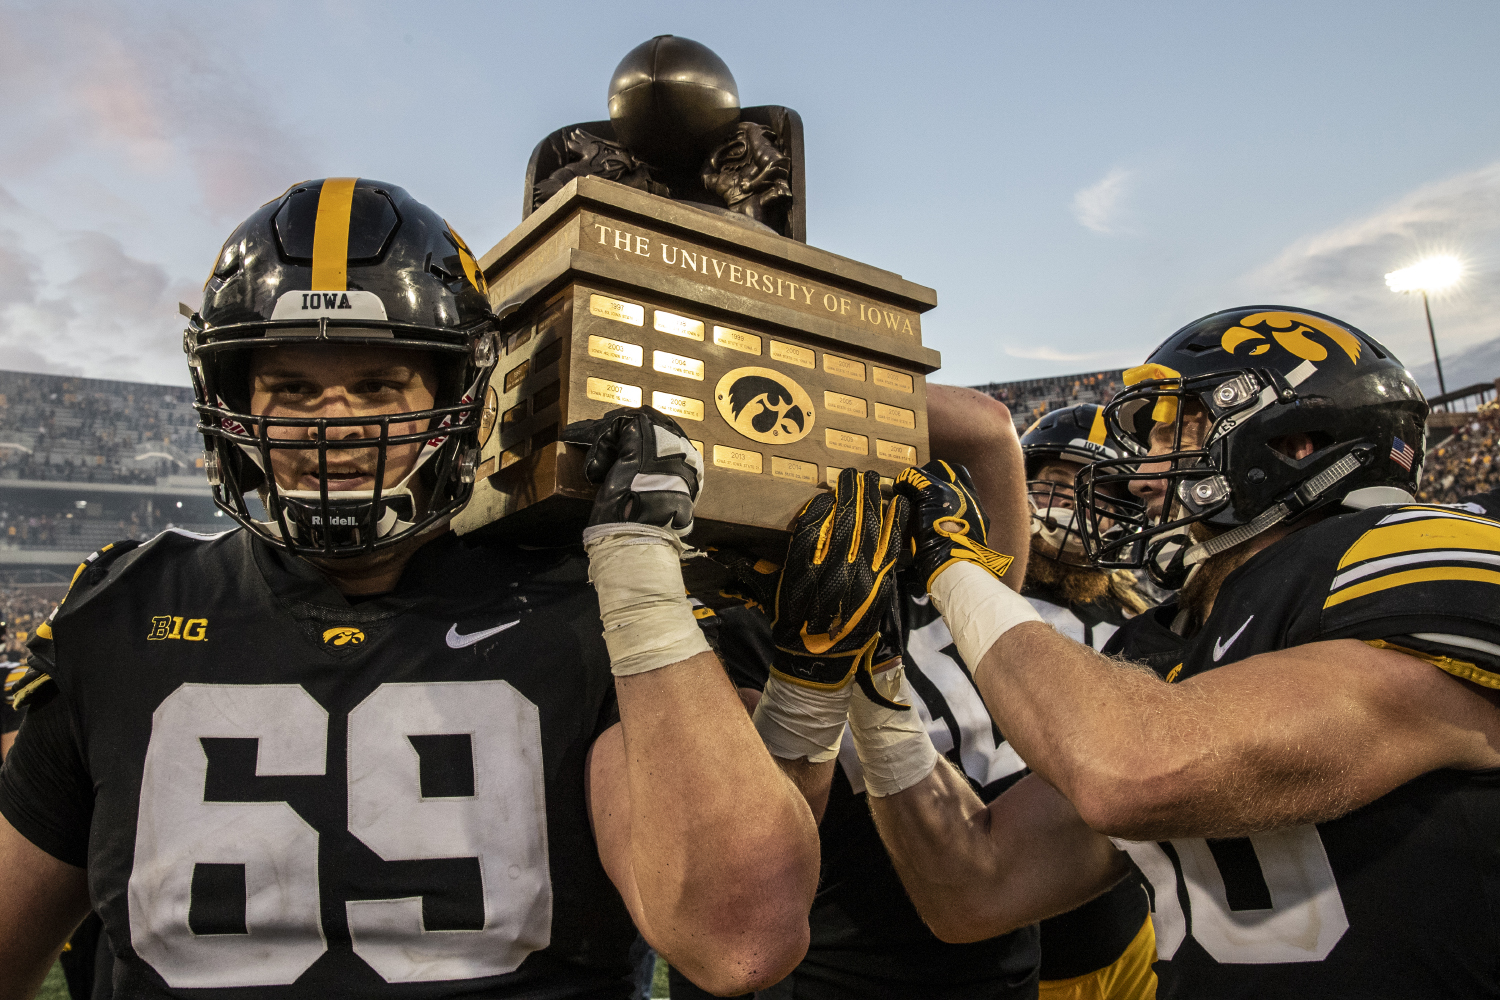 Iowa center Keegan Render and teammates carry the Cy-Hawk trophy off the field after Iowa's game against Iowa State at Kinnick Stadium on Saturday, September 8, 2018.  The Hawkeyes defeated the cyclones 13-3.